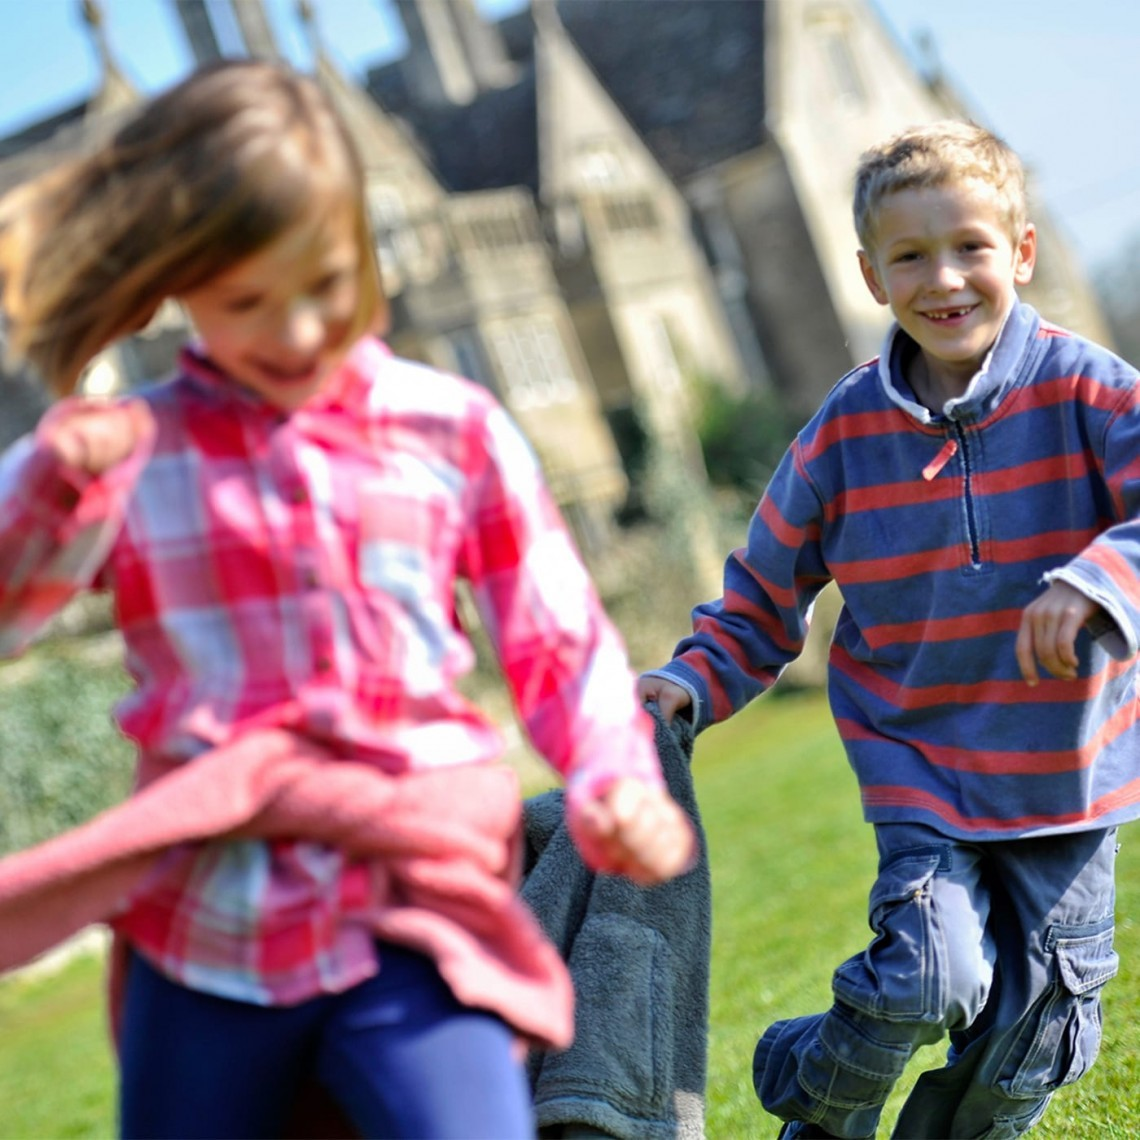 Children enjoying an activity in the grounds of Woolley Grange